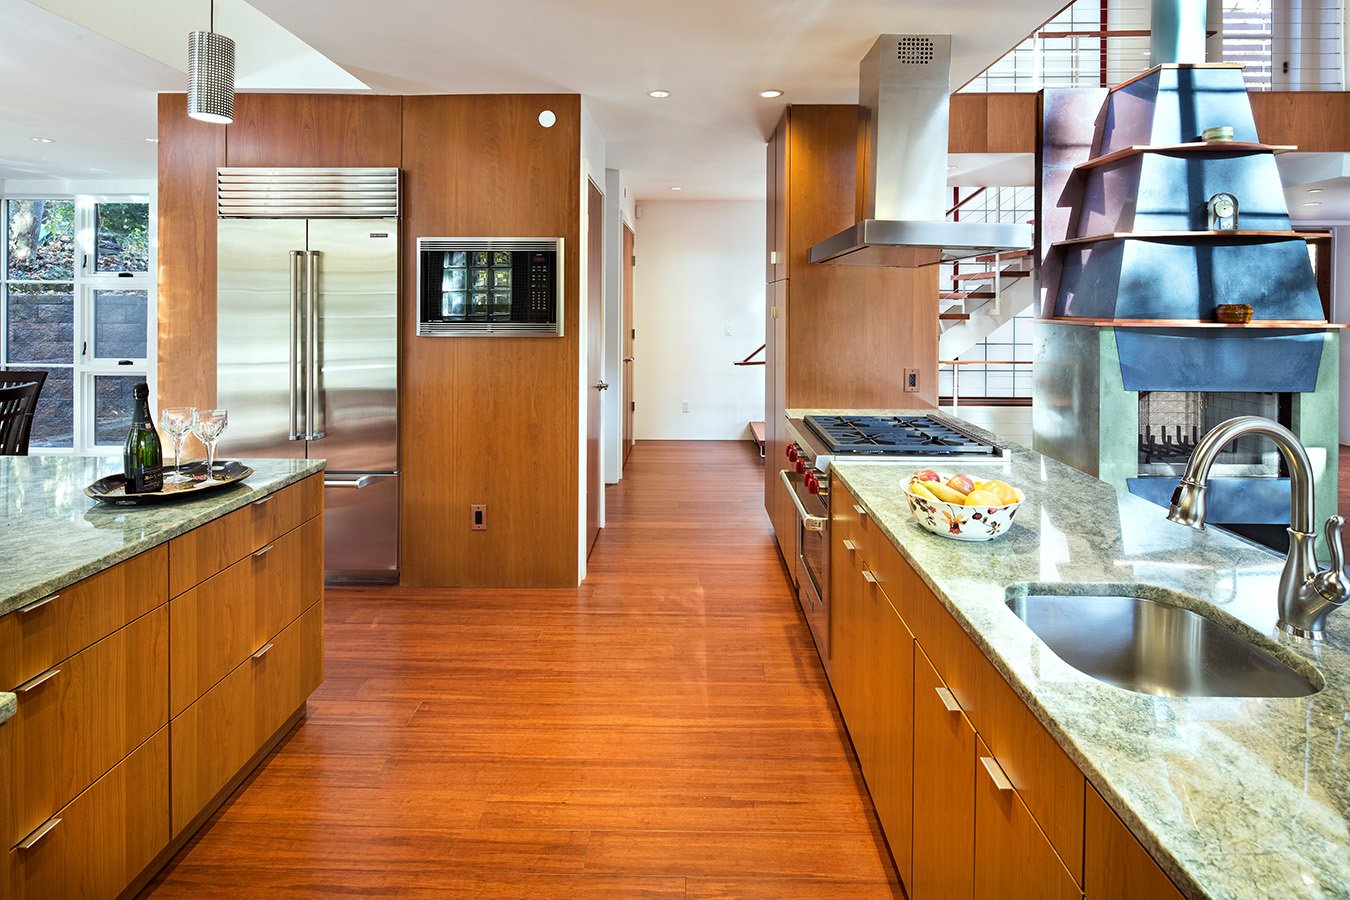 Kitchen, Refrigerator, Cooktops, Range, Range Hood, Microwave, Dishwasher, Granite, Wood, Medium Hardwood, Mosaic Tile, Ceiling, Pendant, Undermount, and Concrete Kitchen  Best Kitchen Range Hood Wood Mosaic Tile Dishwasher Undermount Photos from Home for Sale: Takoma Park House